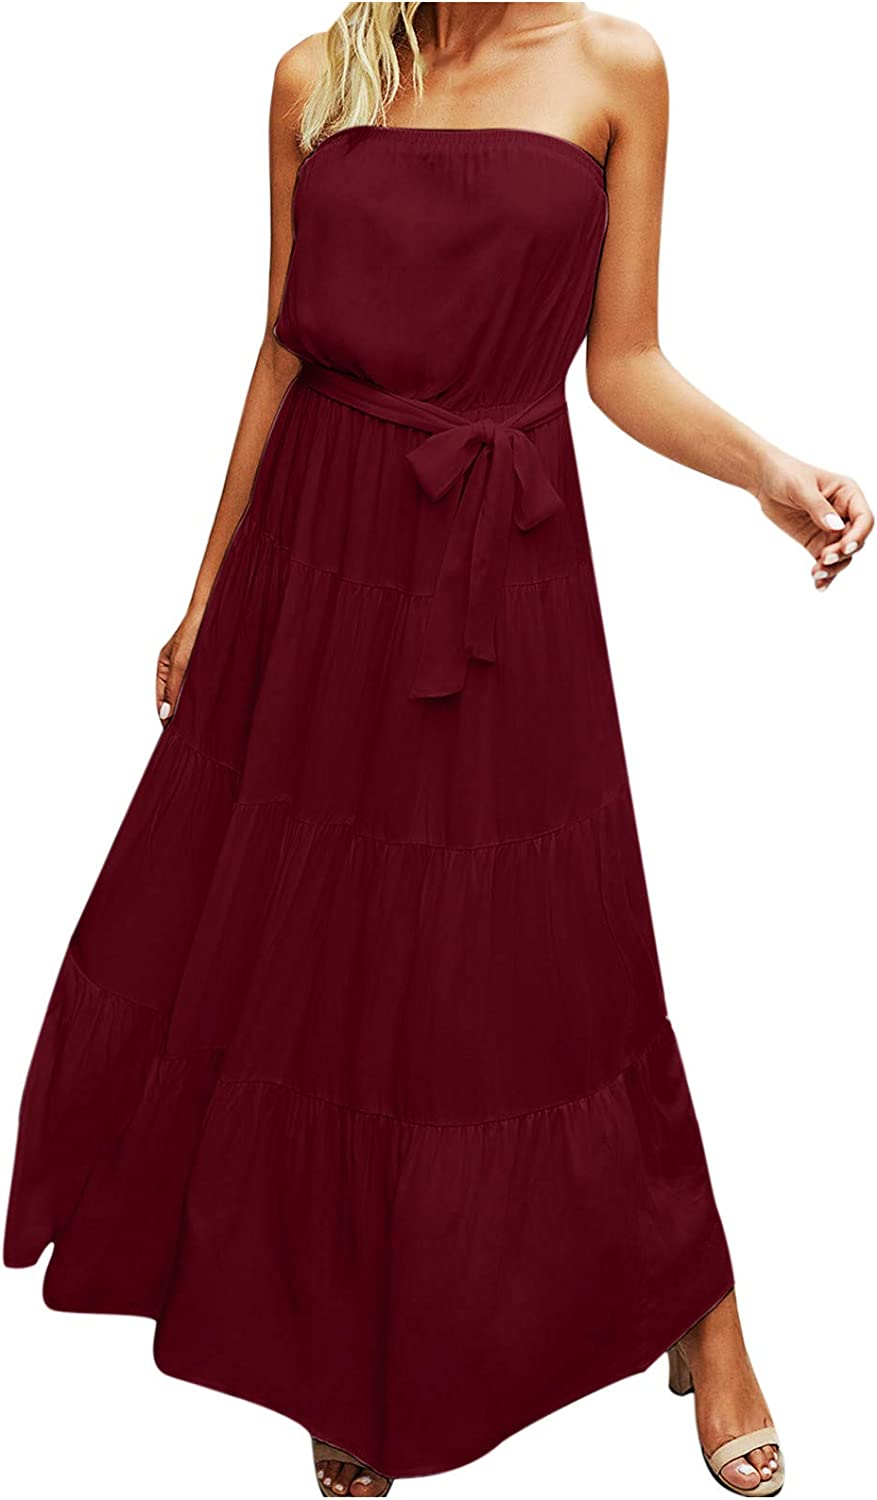 Bidobibo Womens Summer Dresses Casual Off Shoulder Sleeveless Pleated Solid Color Dress Tie Front Long Sundresses for Women